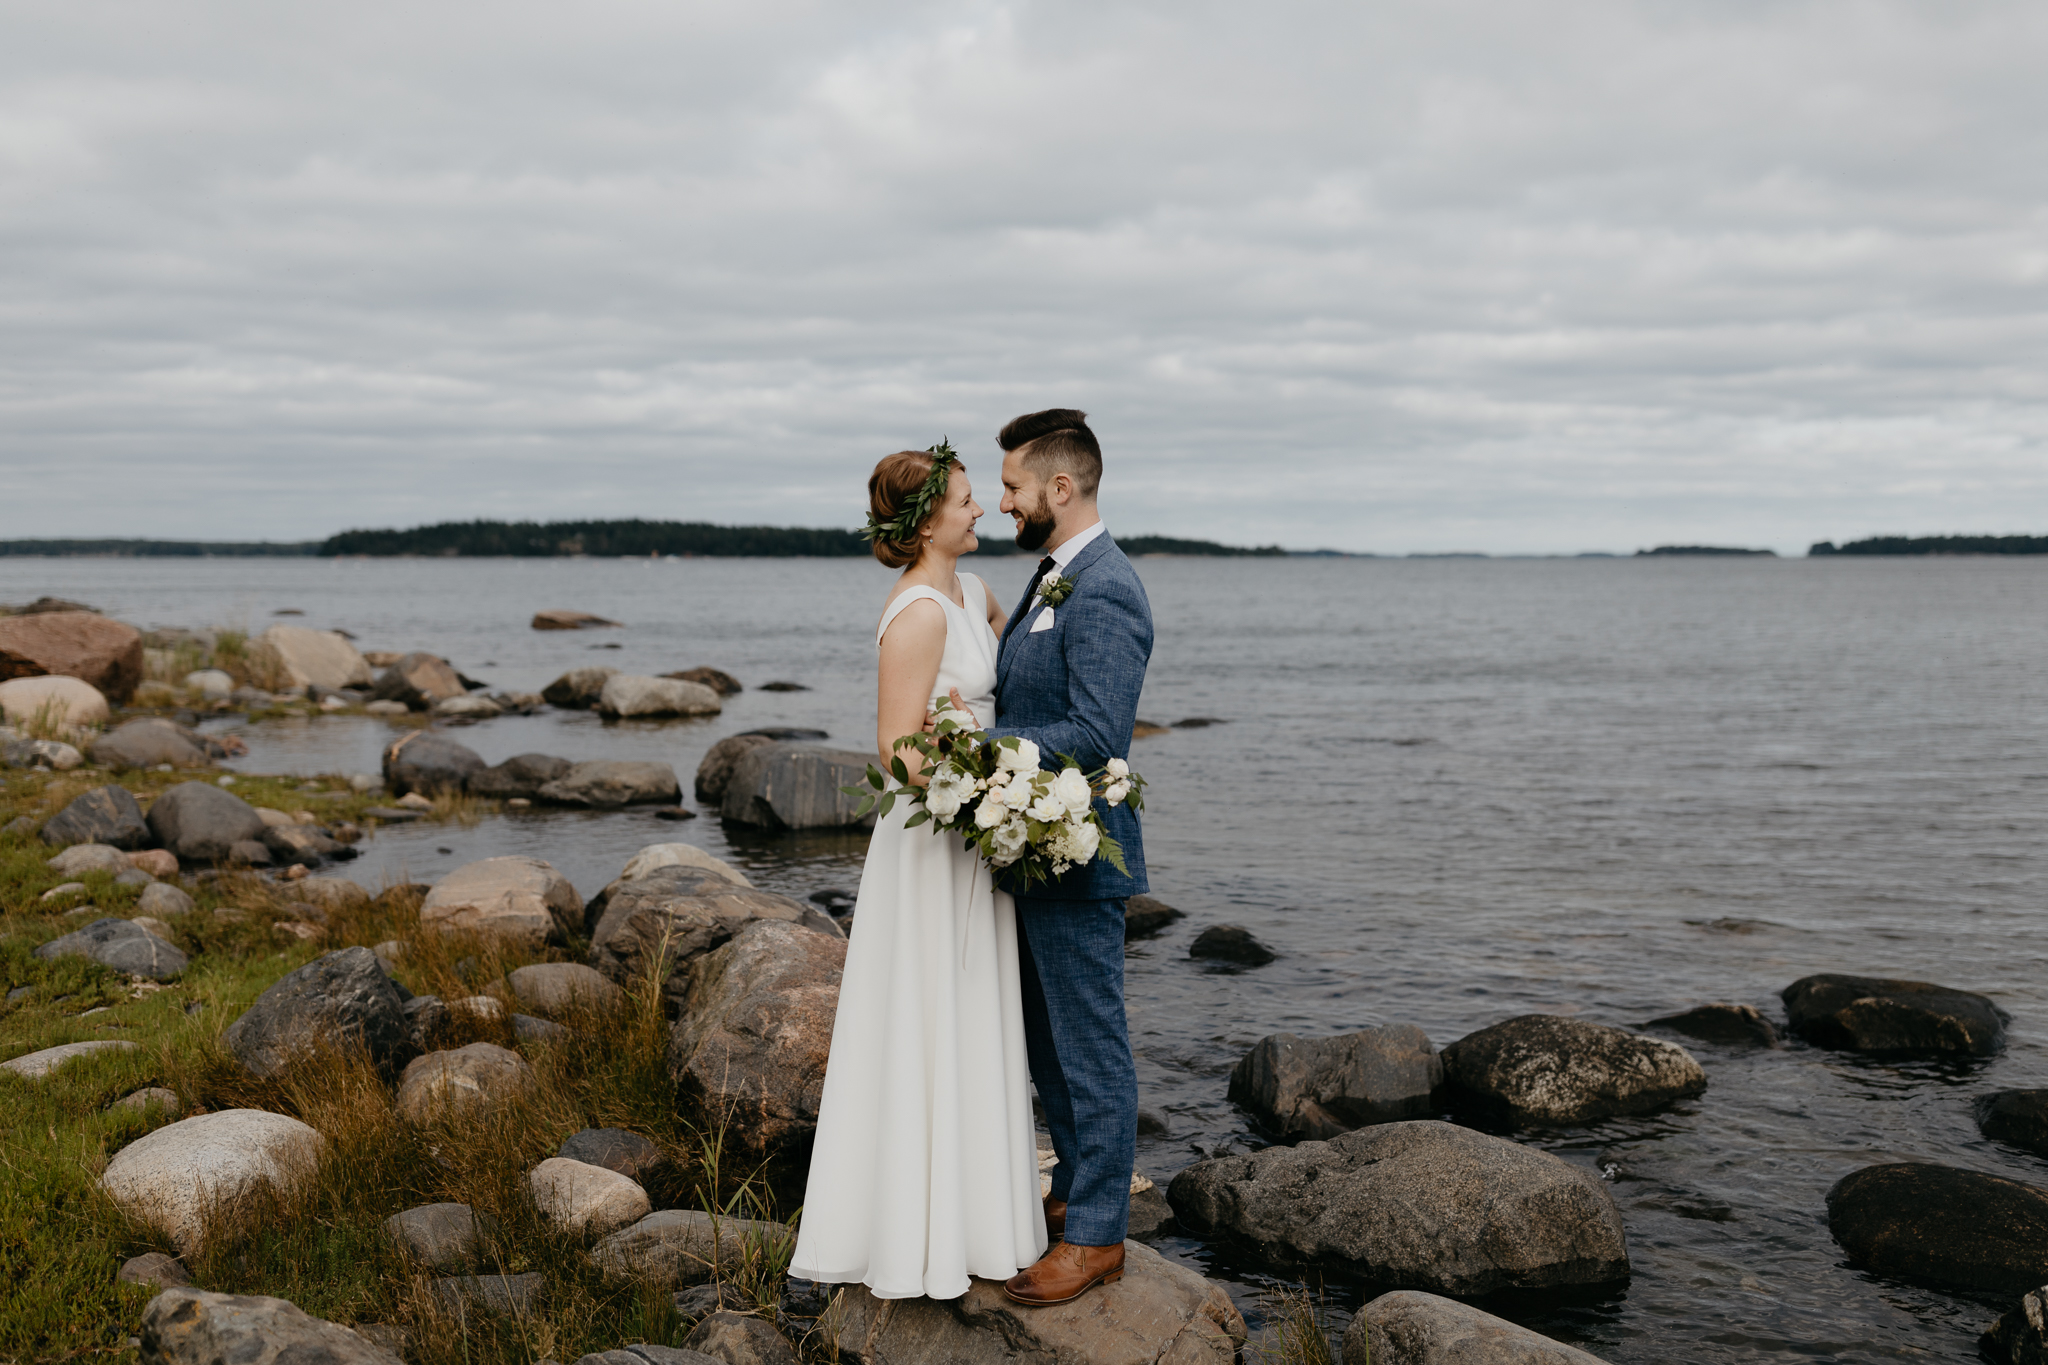 Vilhelmiina + Mark | Photo by Patrick Karkkolainen Wedding Photographer | Helsinki Wedding Photographer-154.jpg